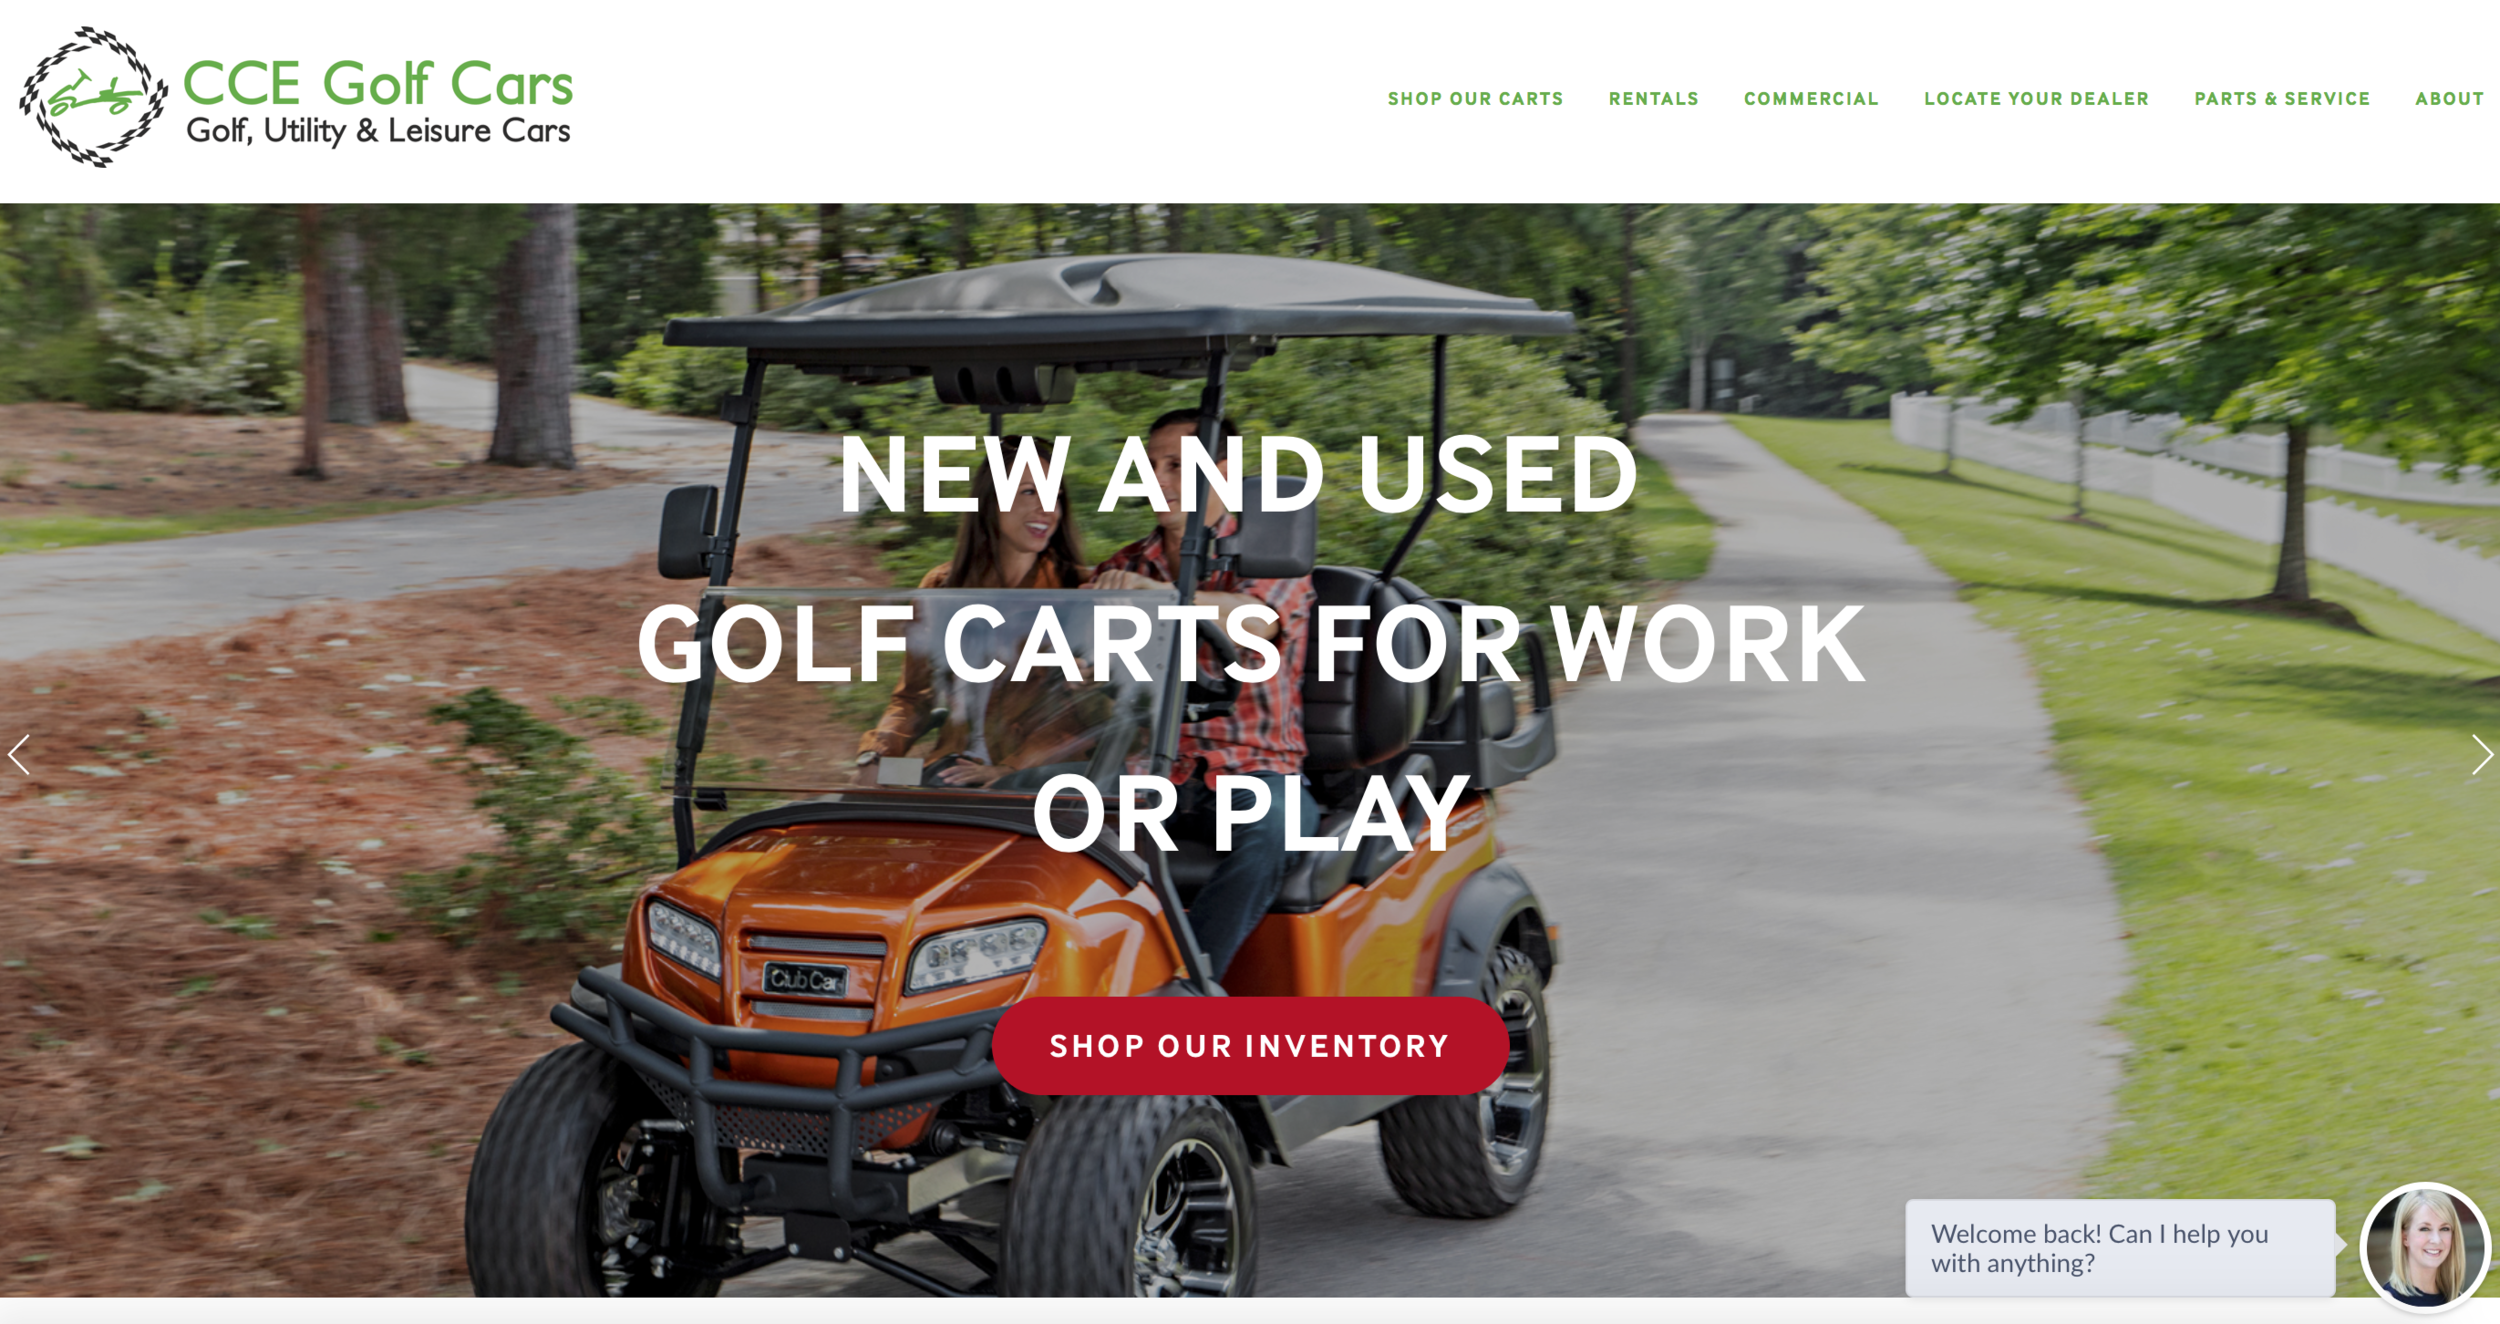 CCE Golf Cars: Logo and Web Design